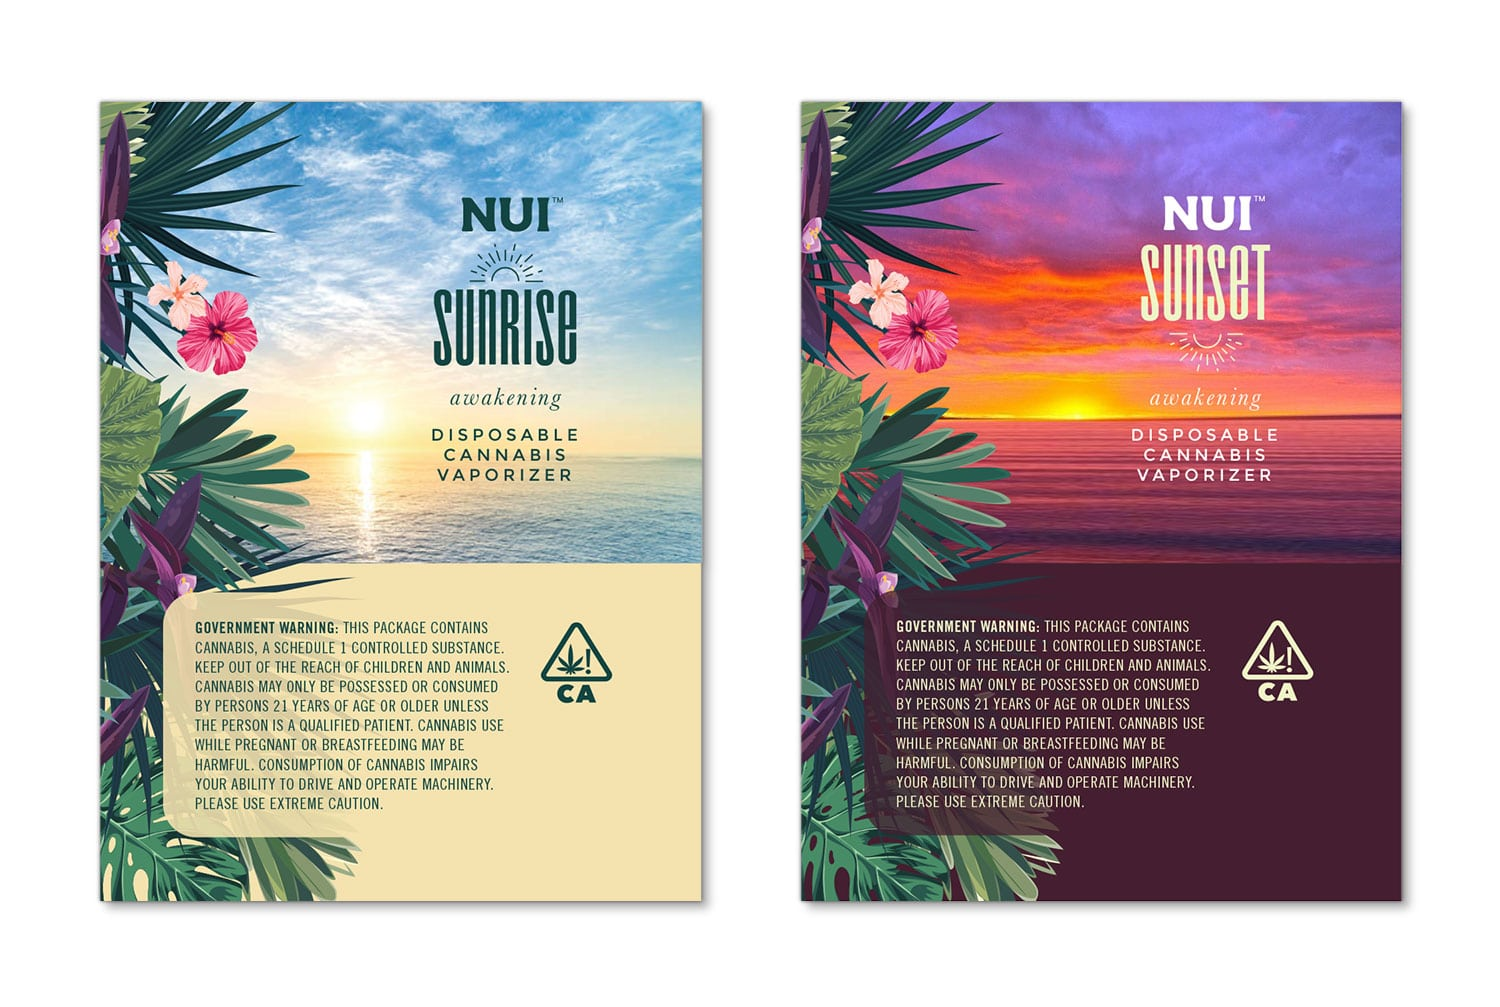 NUI packaging design, full label 1